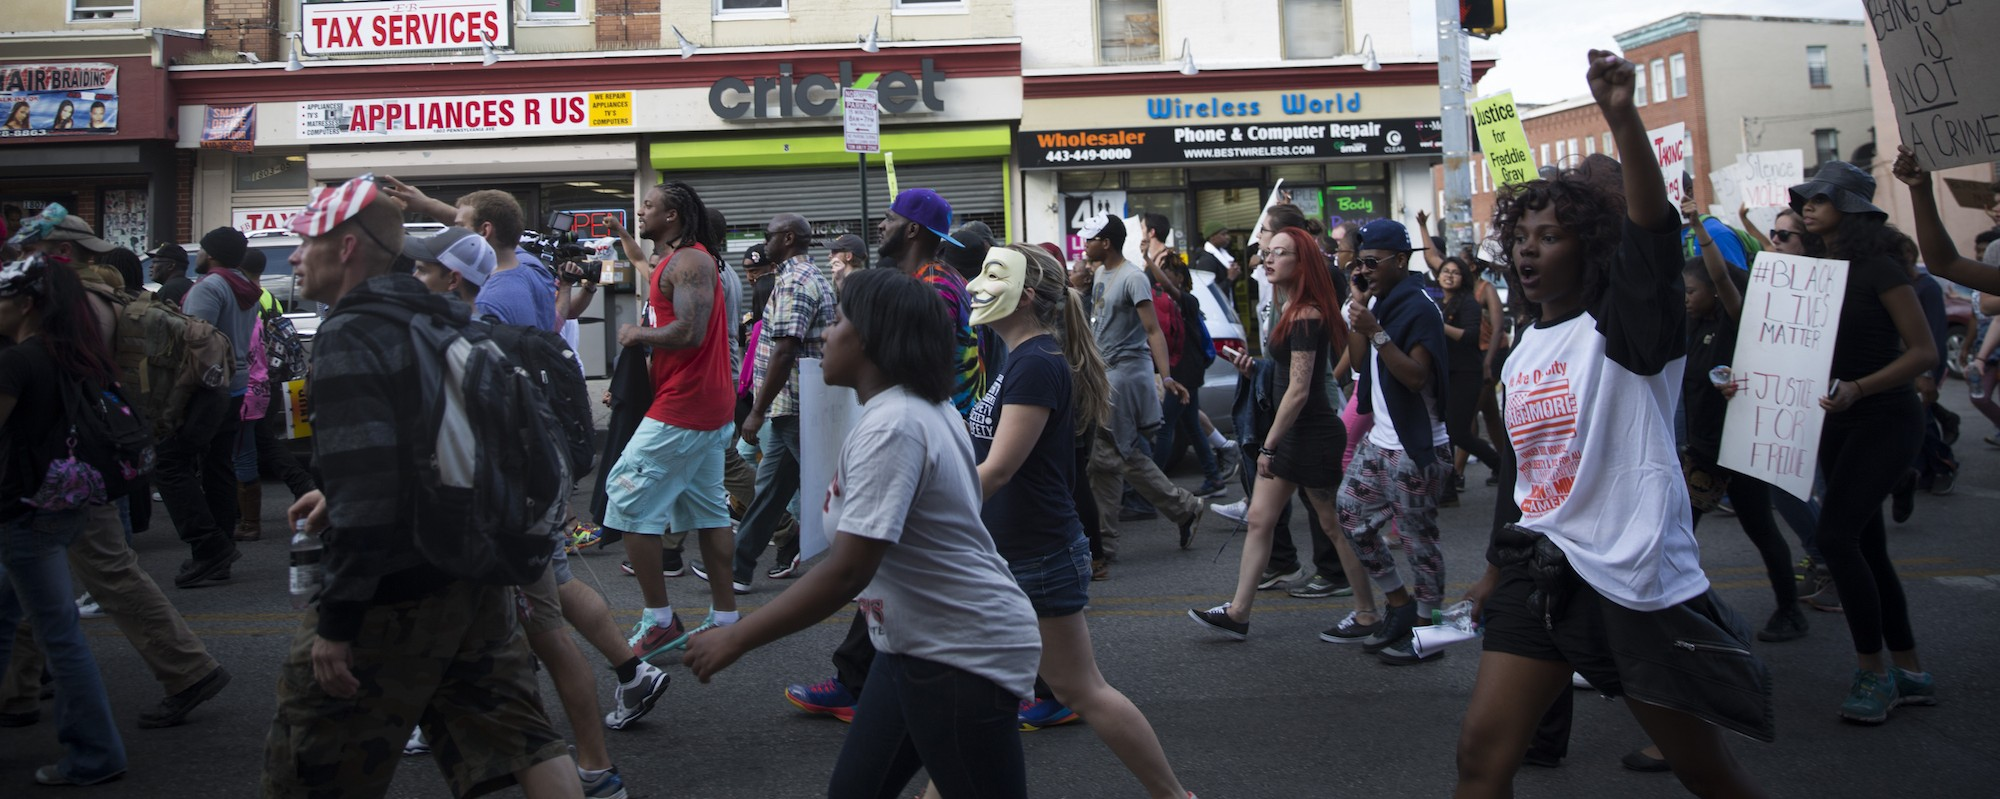 Fearing a 'Catastrophic Incident,' 400 Federal Officers Descended on the Baltimore Protests